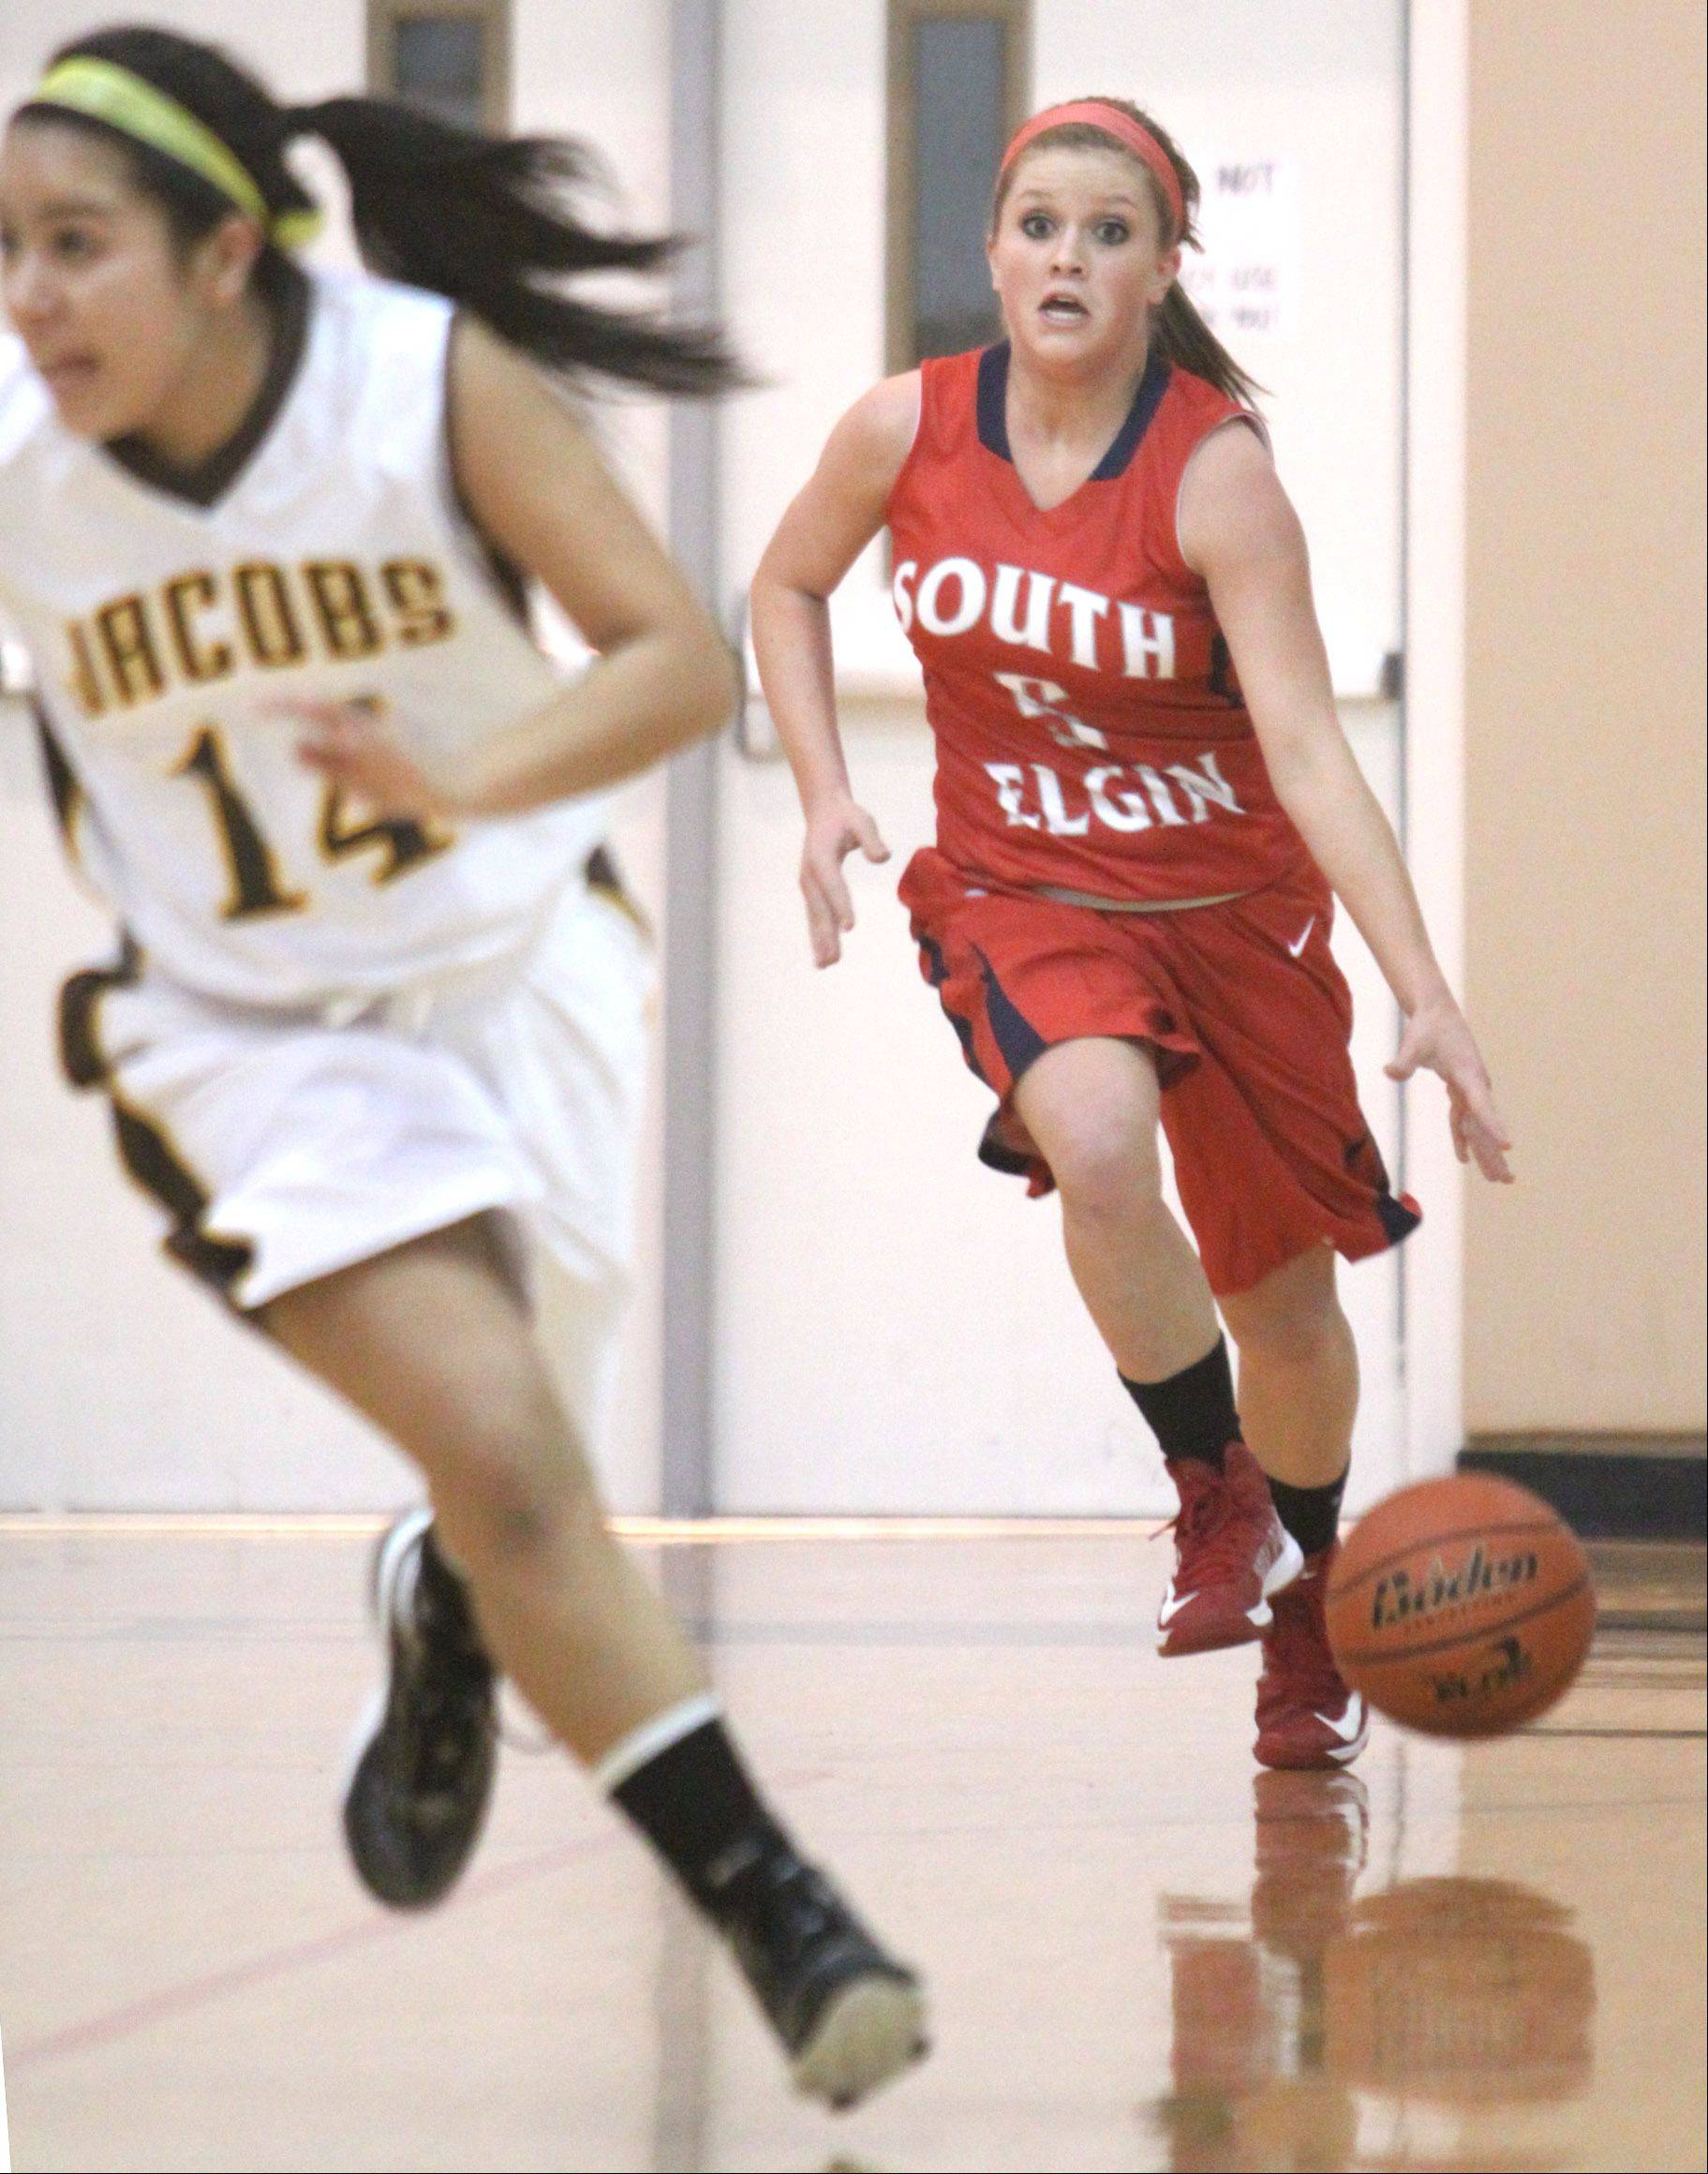 Jacobs' Nicky Chapa, left, motors up court as South Elgin's Anna Tracy, right, looks for an open teammate on a fast break during a varsity basketball game at Algonquin on Tuesday night.